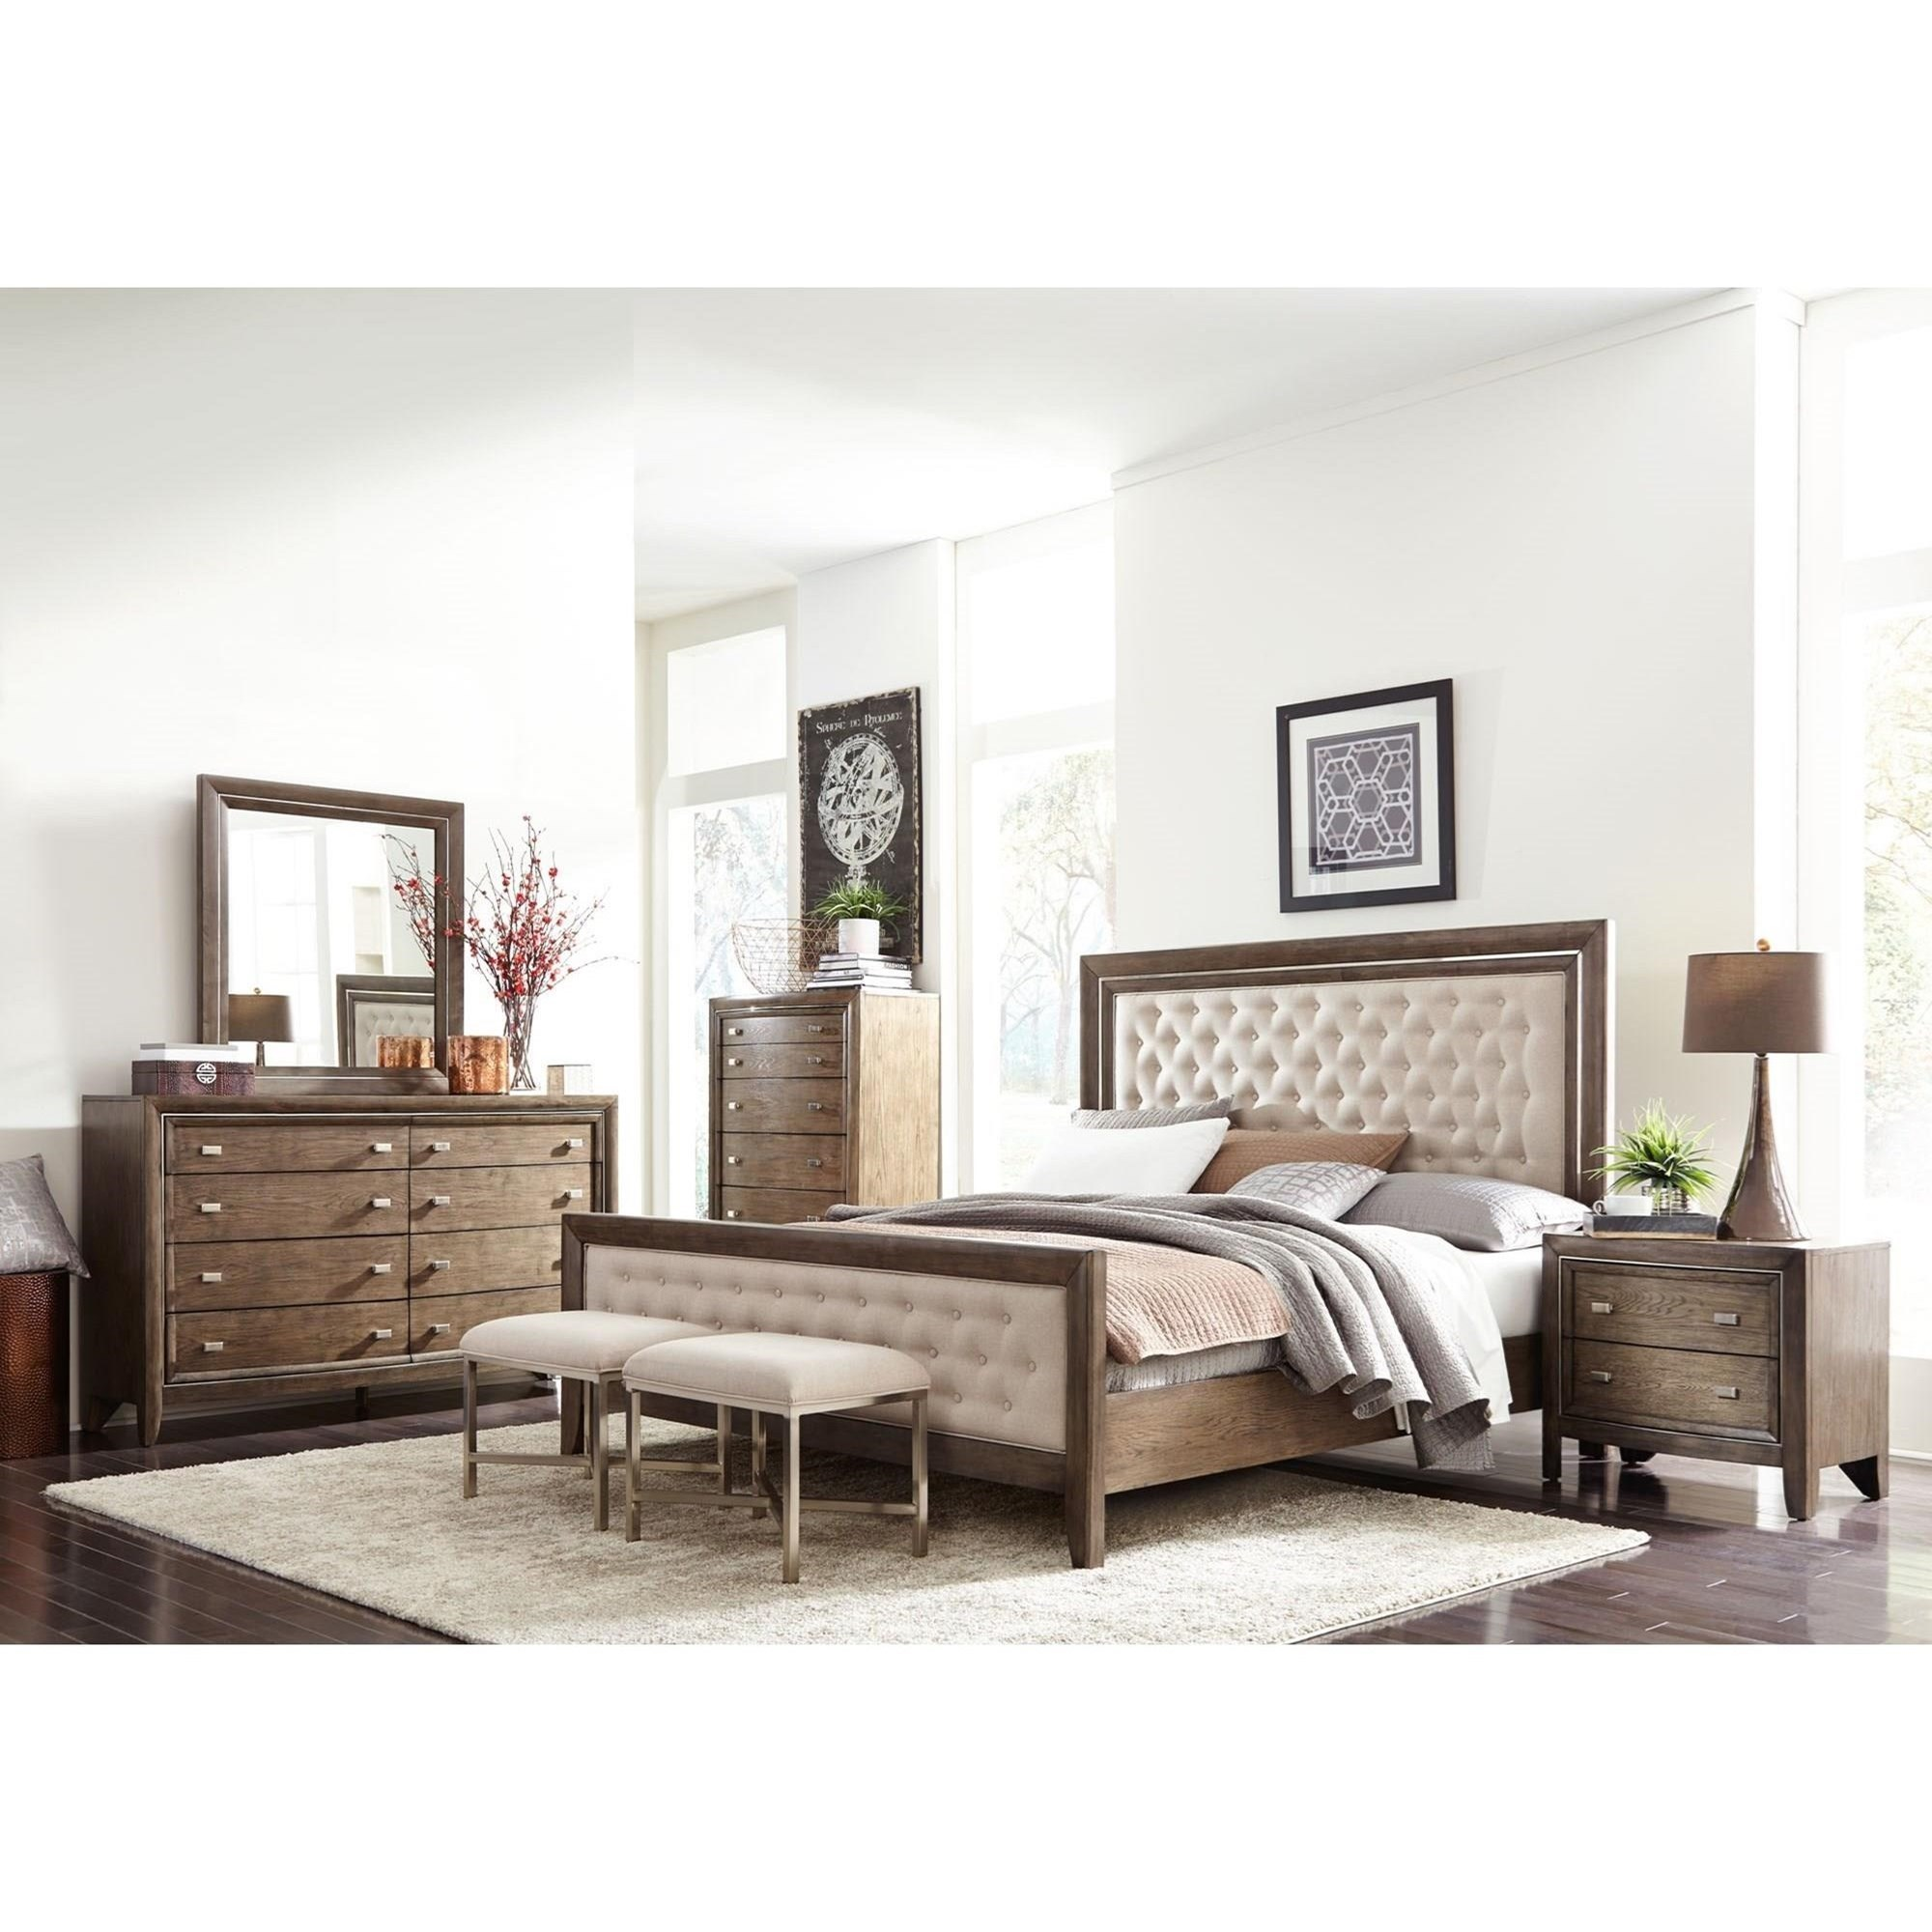 Furniture stores in aberdeen sd -  Furniture Stores Aberdeen Amazing